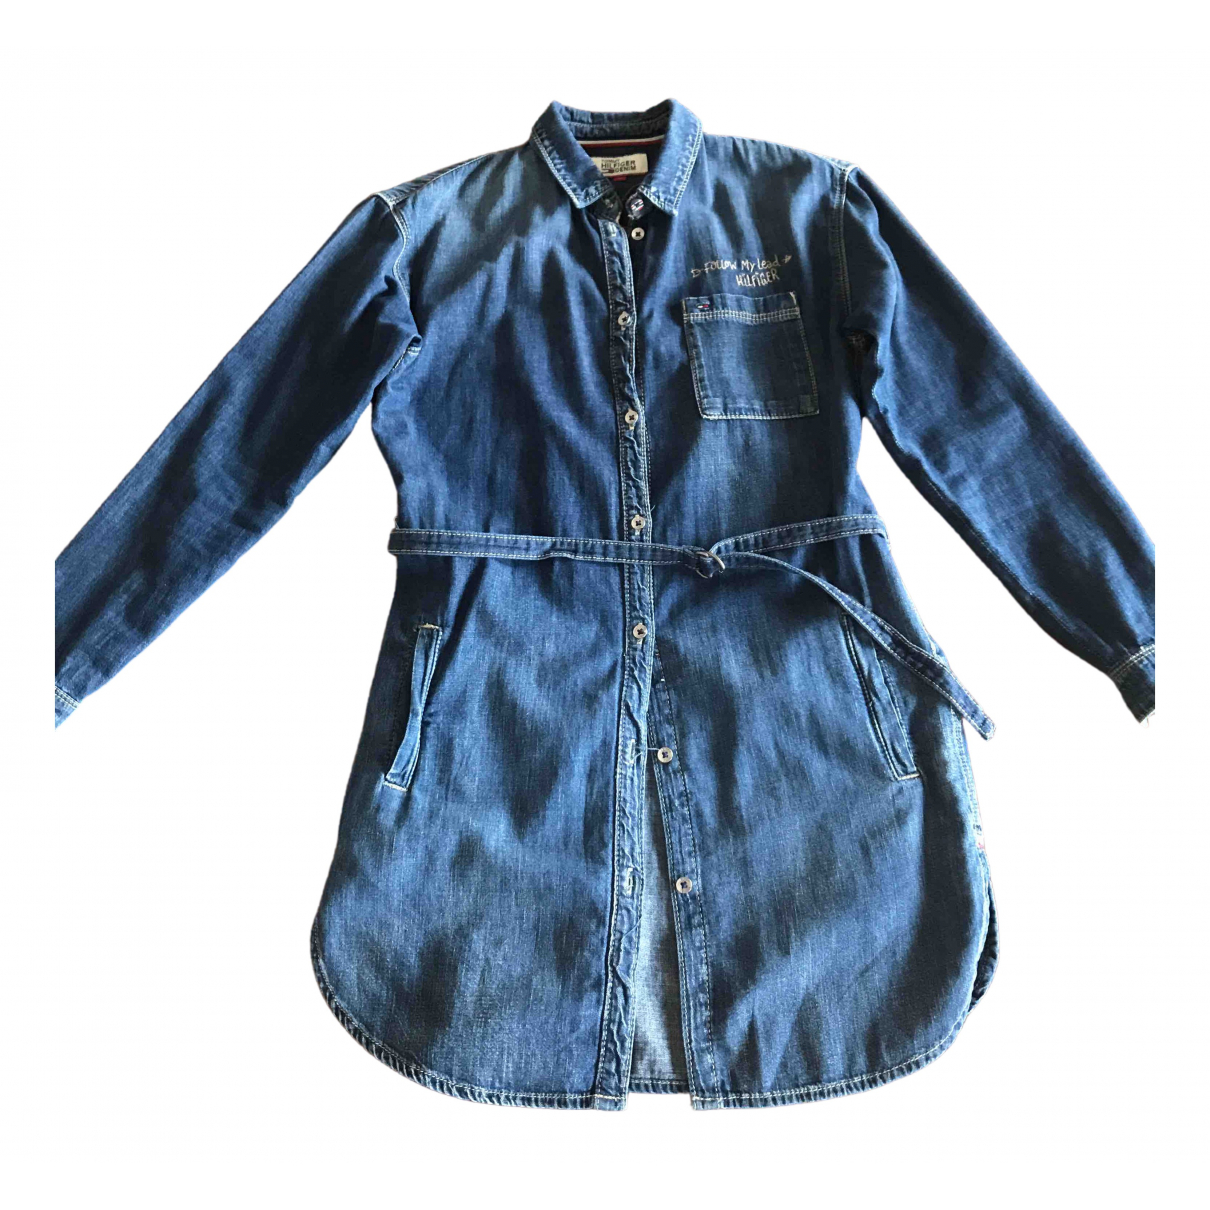 Tommy Hilfiger \N Blue Denim - Jeans dress for Kids 10 years - until 56 inches UK